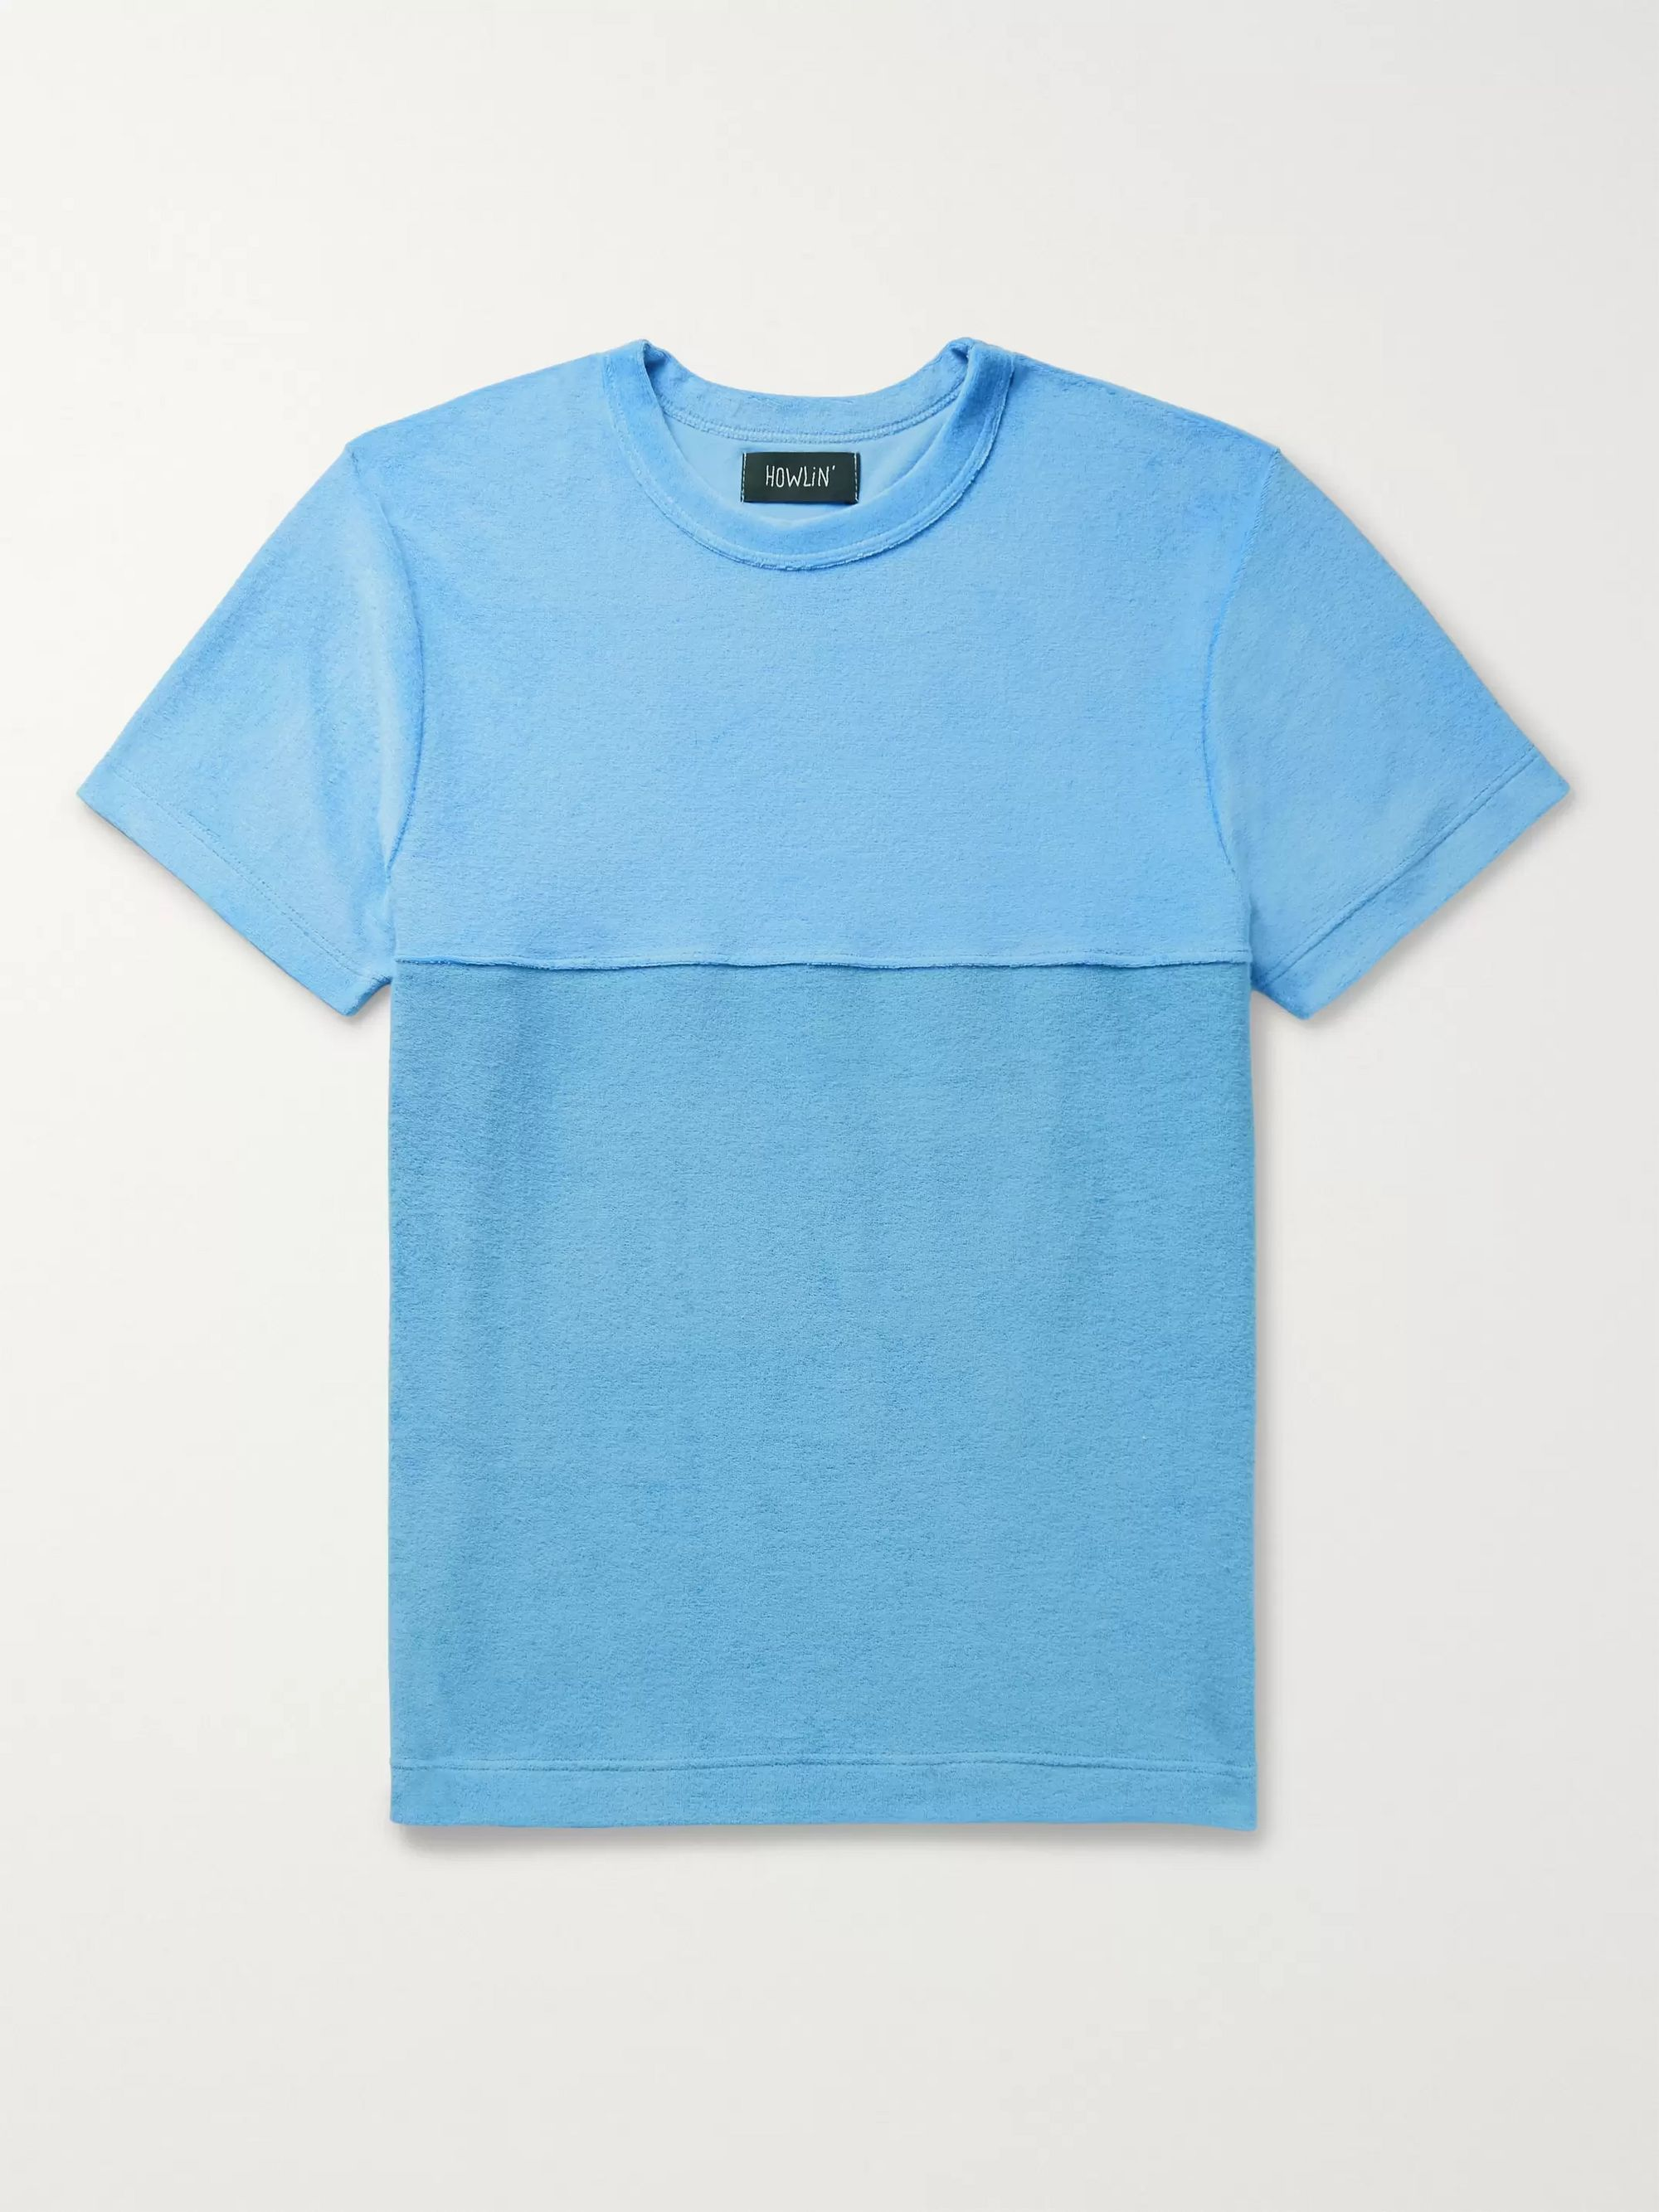 Howlin' Duo Colour-Block Cotton-Blend Terry T-Shirt